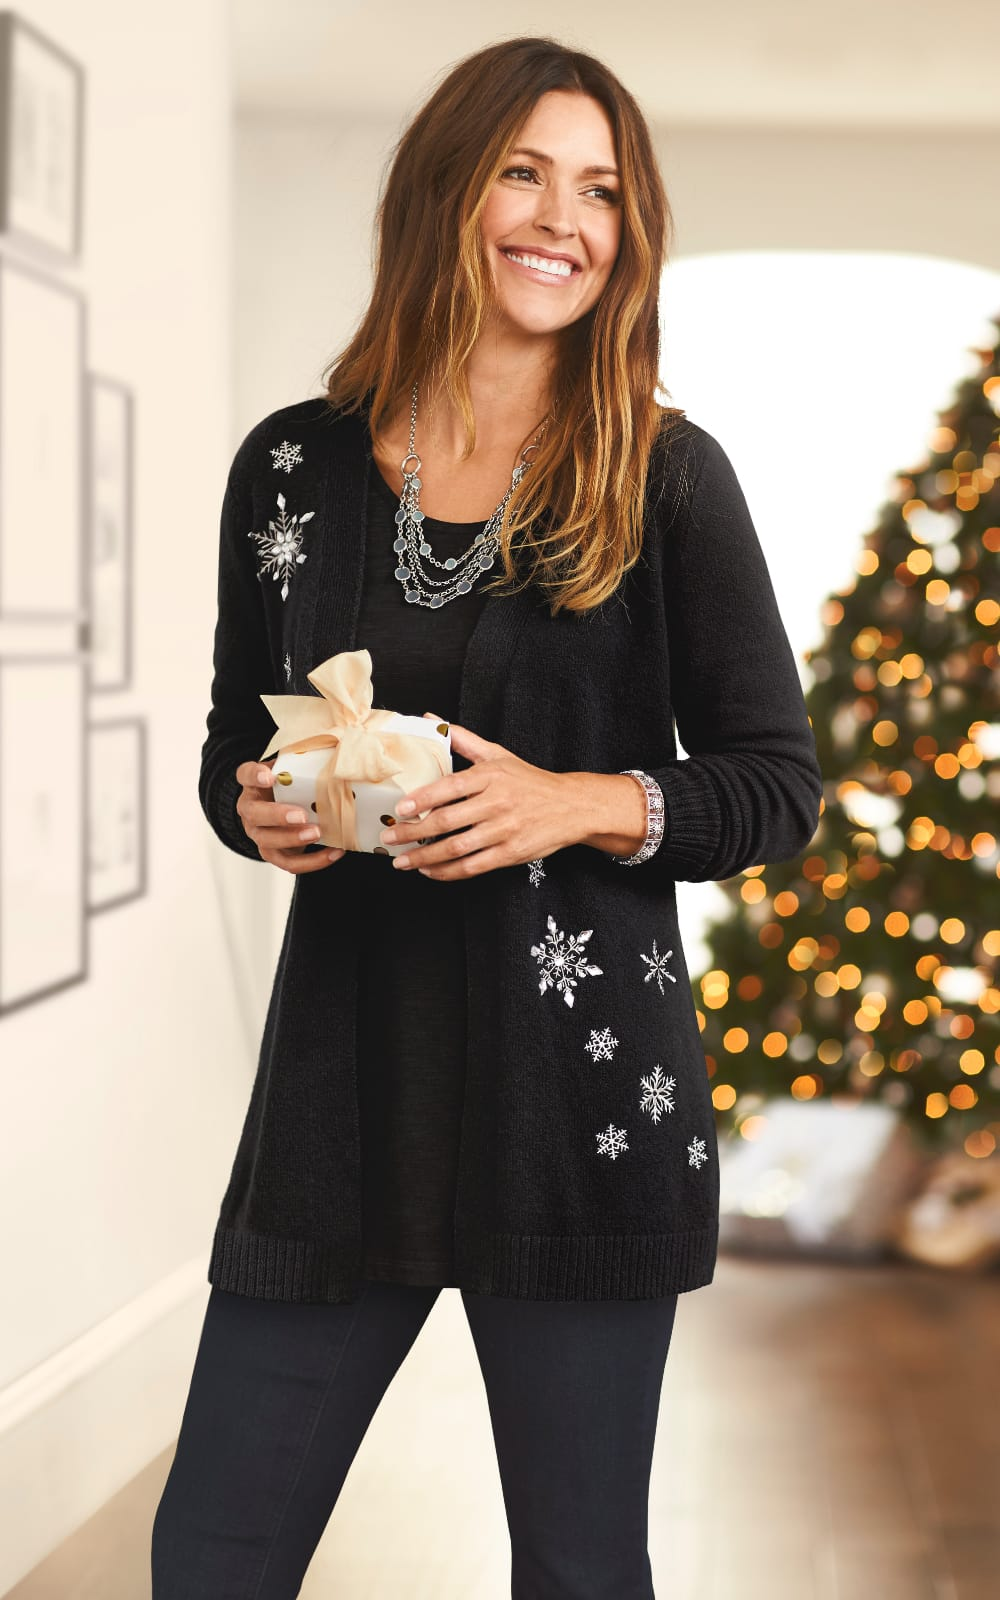 The 'Tis-the-Season Outfit: Featuring the Snowflake embellished cardigan, black essential tee, multi strand necklace, with a jean legging.